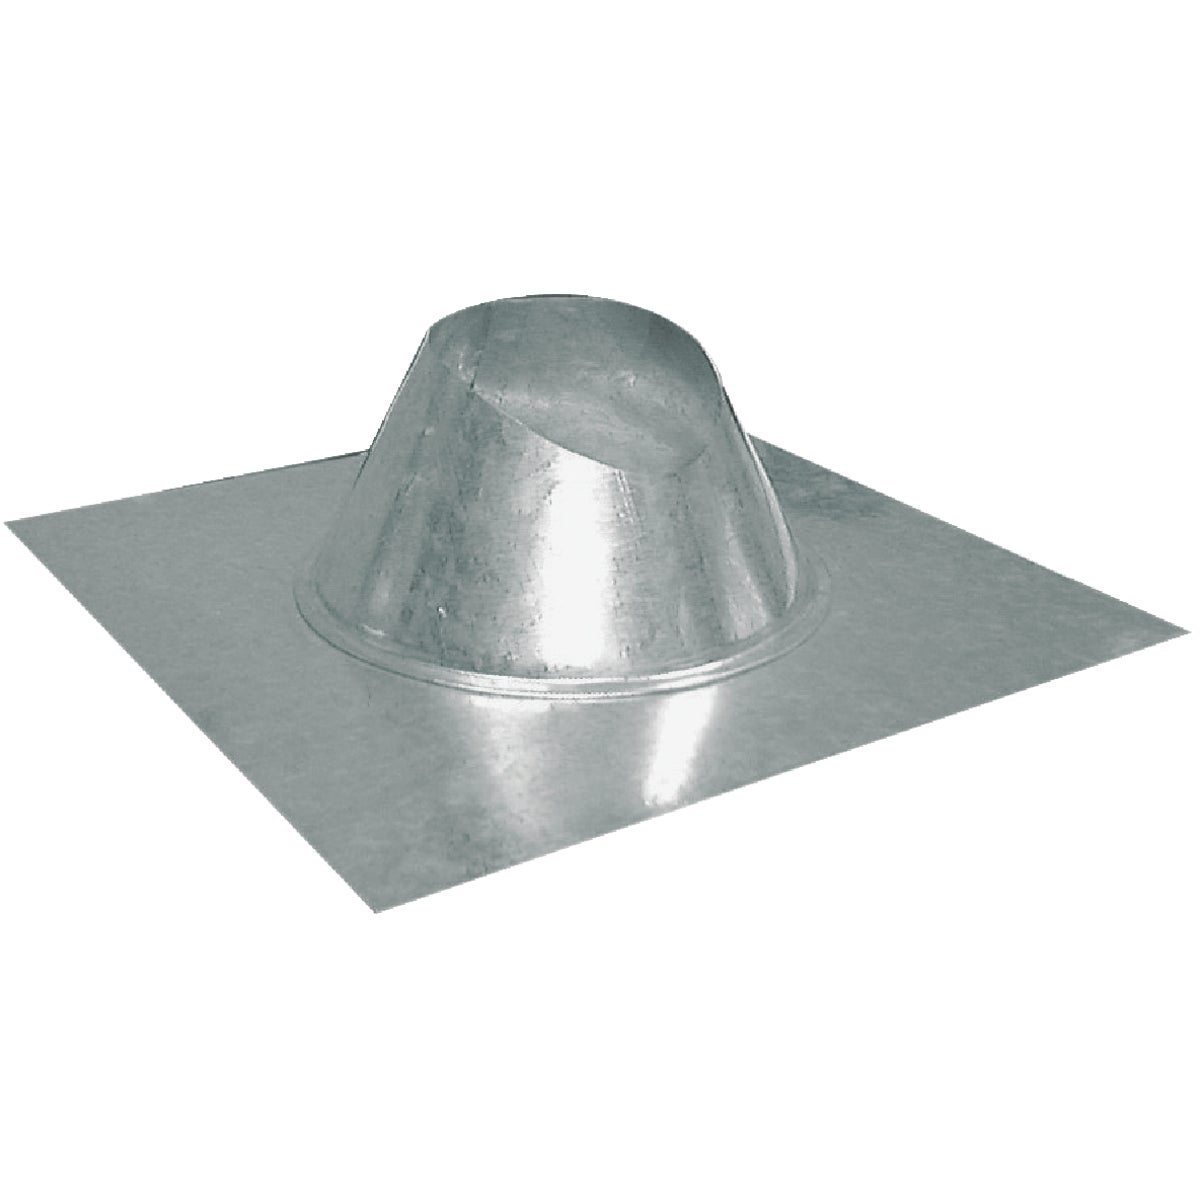 """3"""" GALV ROOF FLASHING - GV1382 by Imperial Mfg Group"""